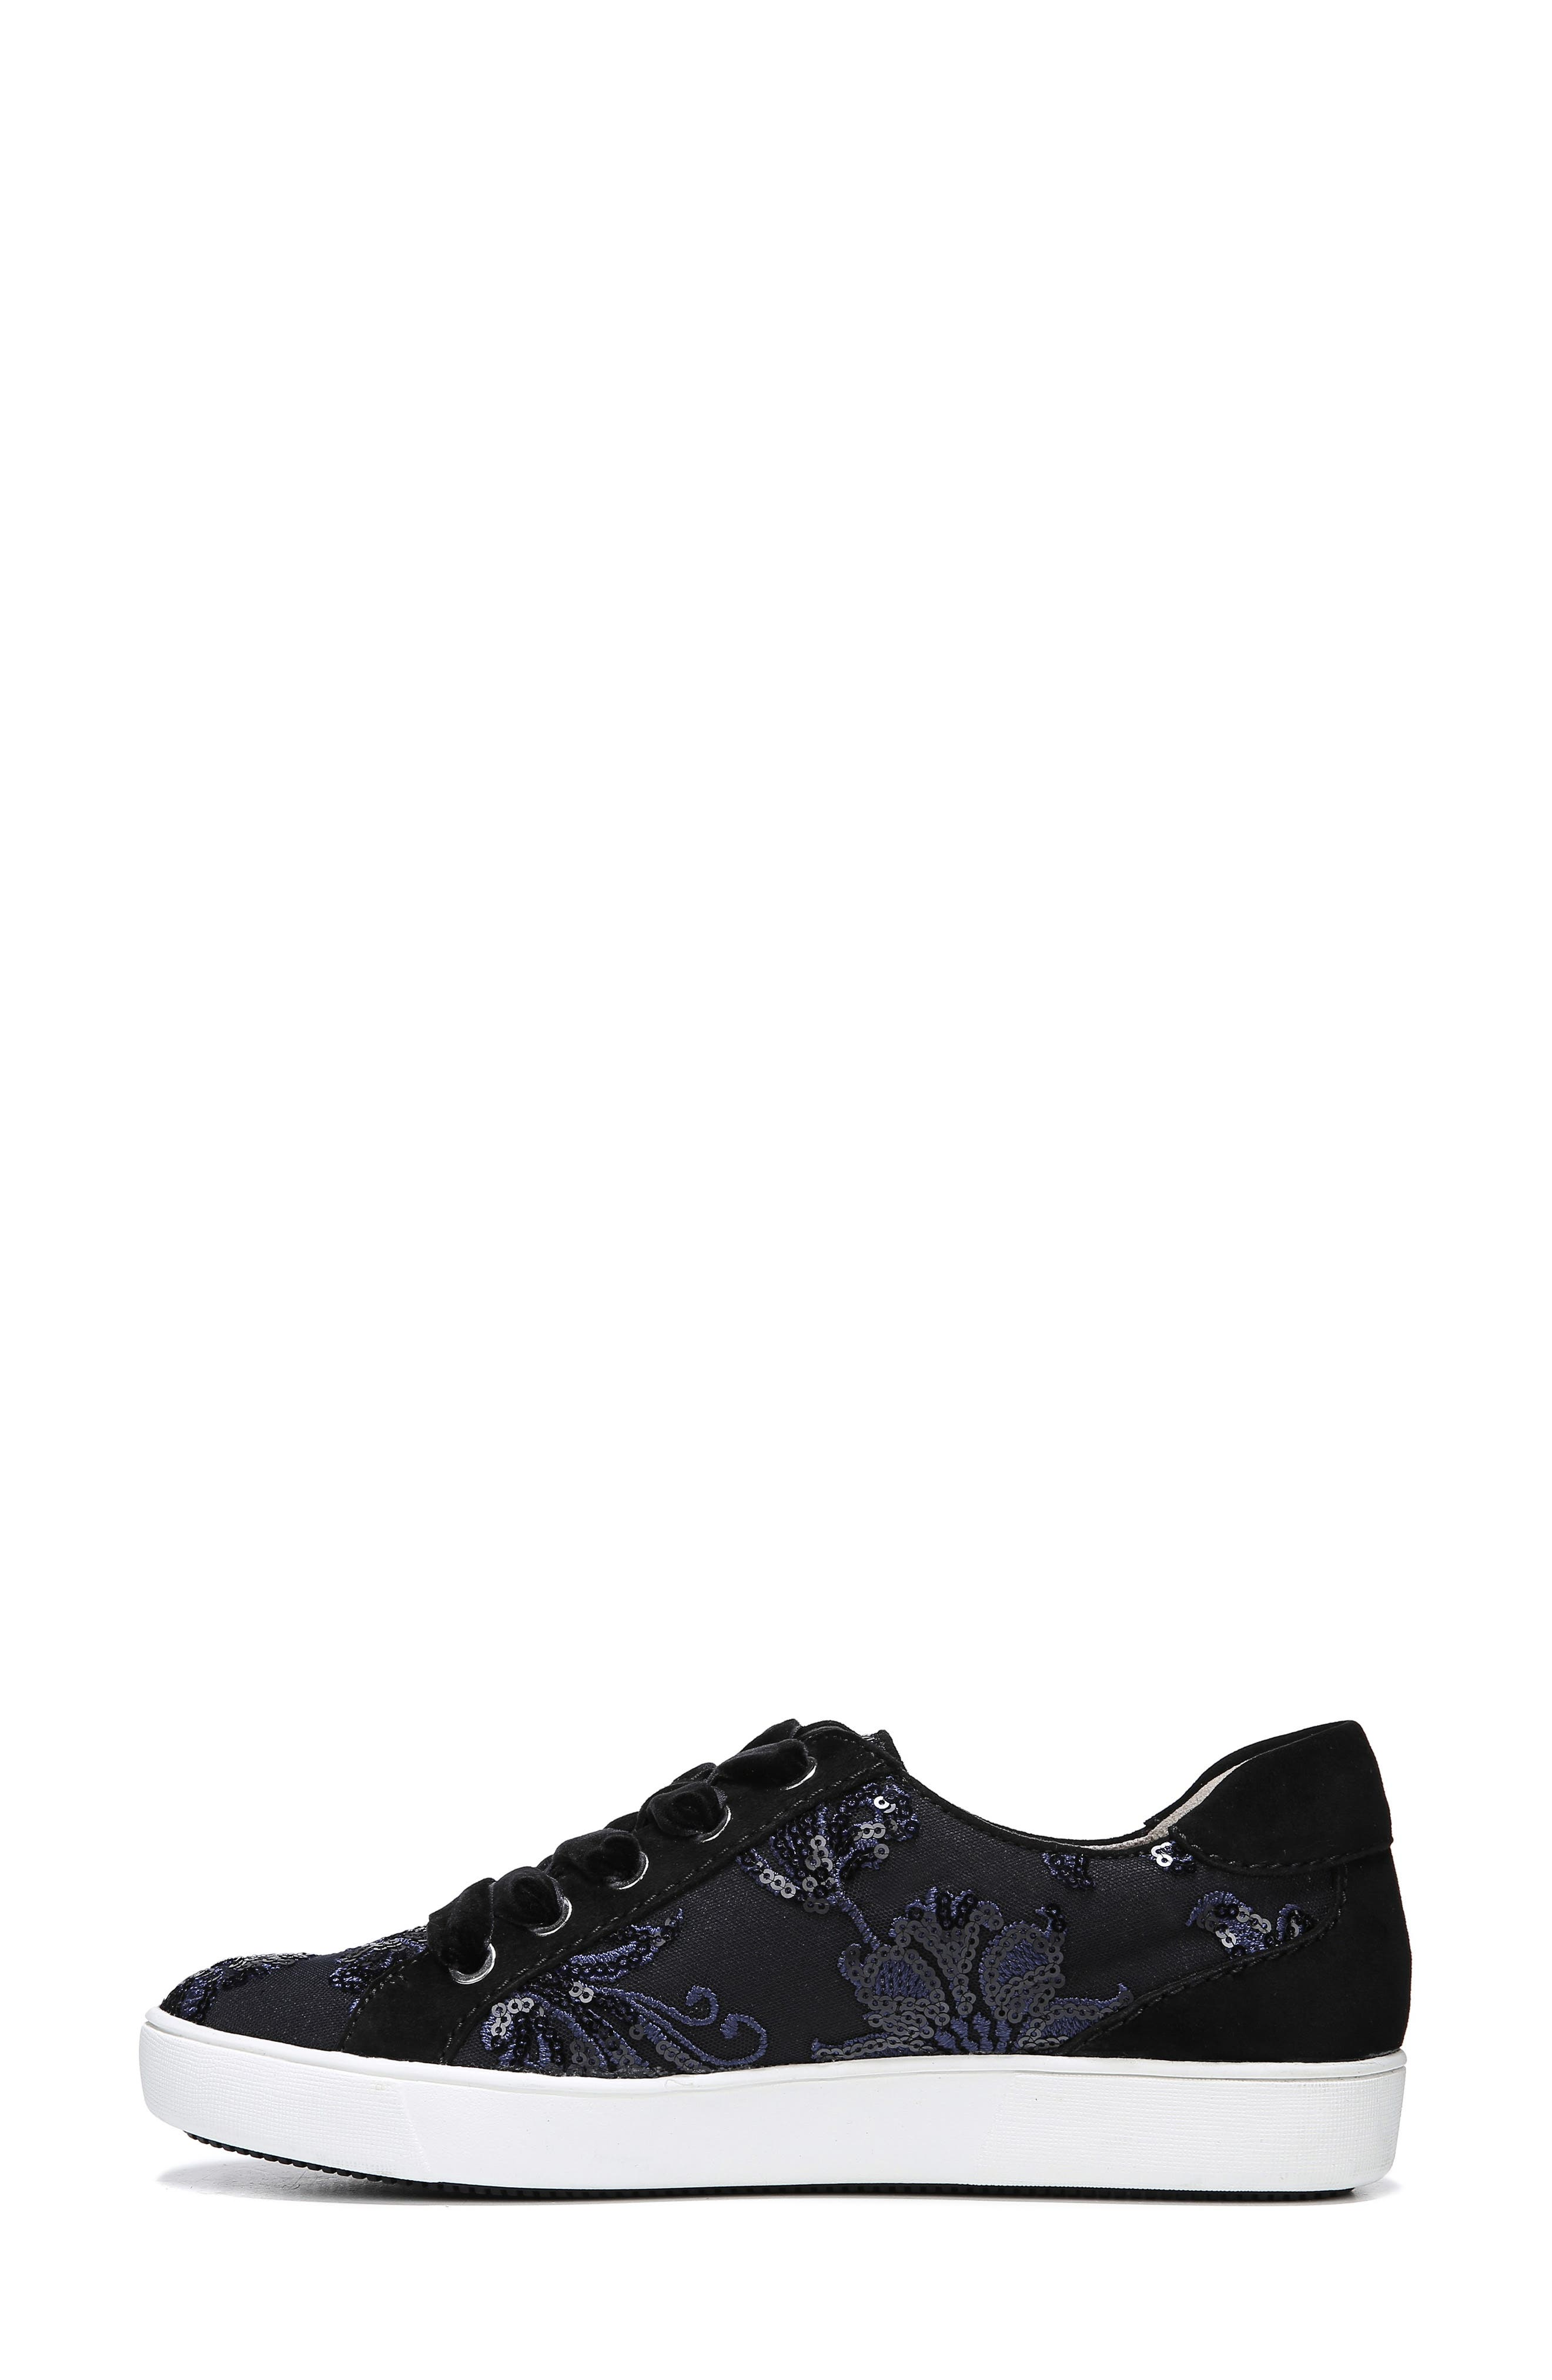 NATURALIZER, Morrison Sneaker, Alternate thumbnail 9, color, NAVY EMBROIDERED LACE